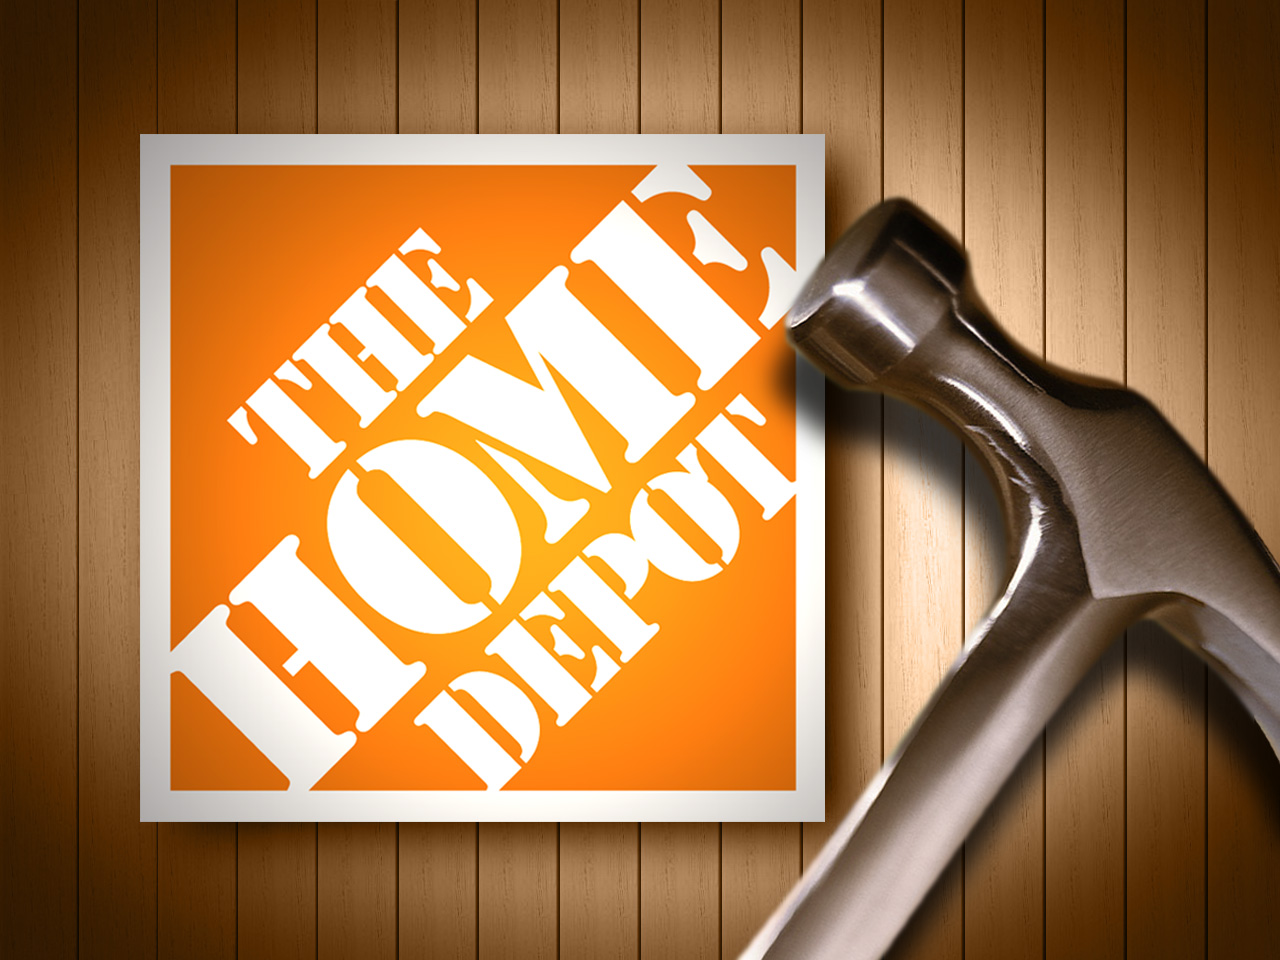 Home Depot laying off 225 more in Baton Rouge WBRZ News 2 Louisiana 1280x960